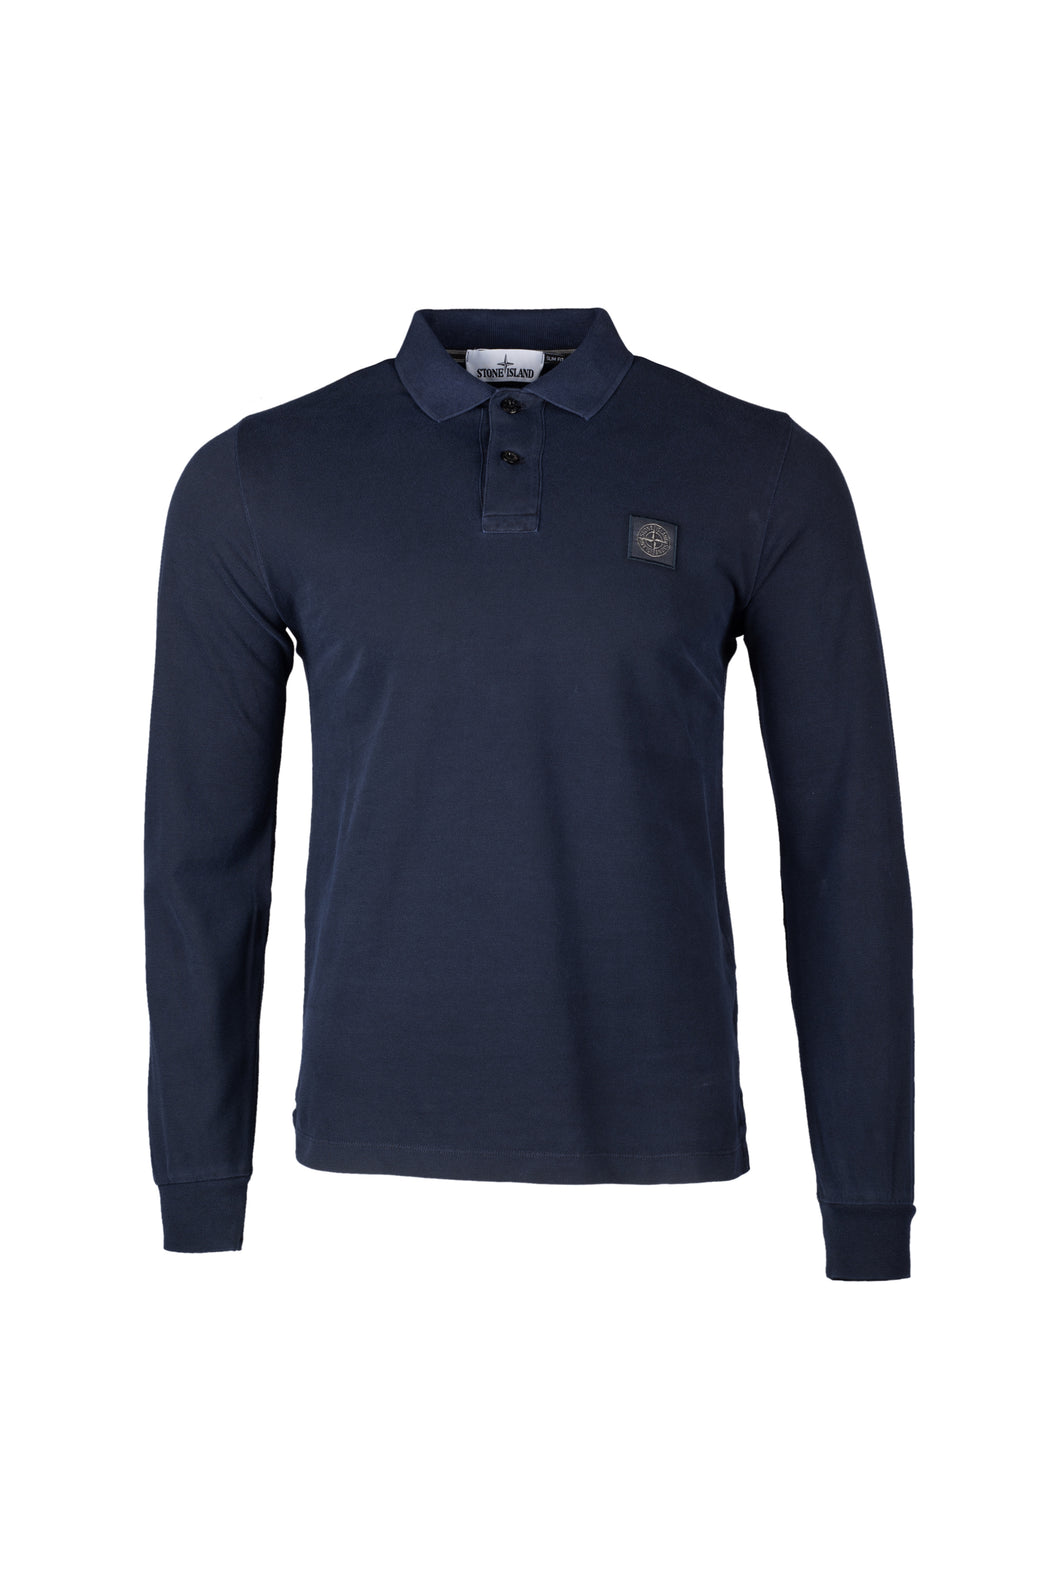 Stone Island Long Sleeve Polo Shirt In Navy 2SS67